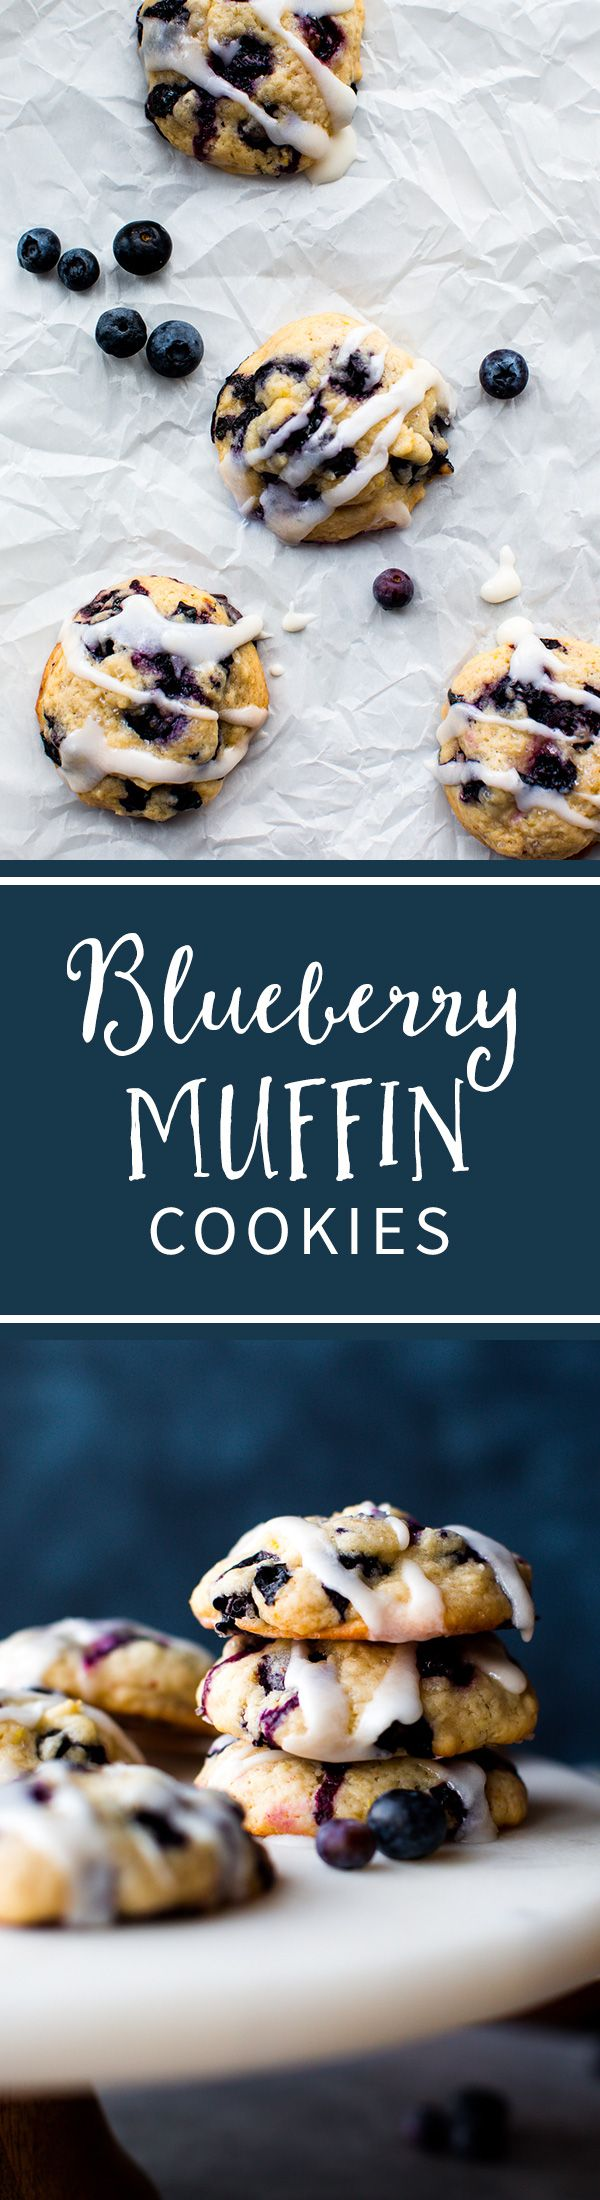 Soft blueberry cookies taste like muffin tops! Studded with juicy blueberries and topped with lemon glaze. Recipe on sallysbakingaddiction.com